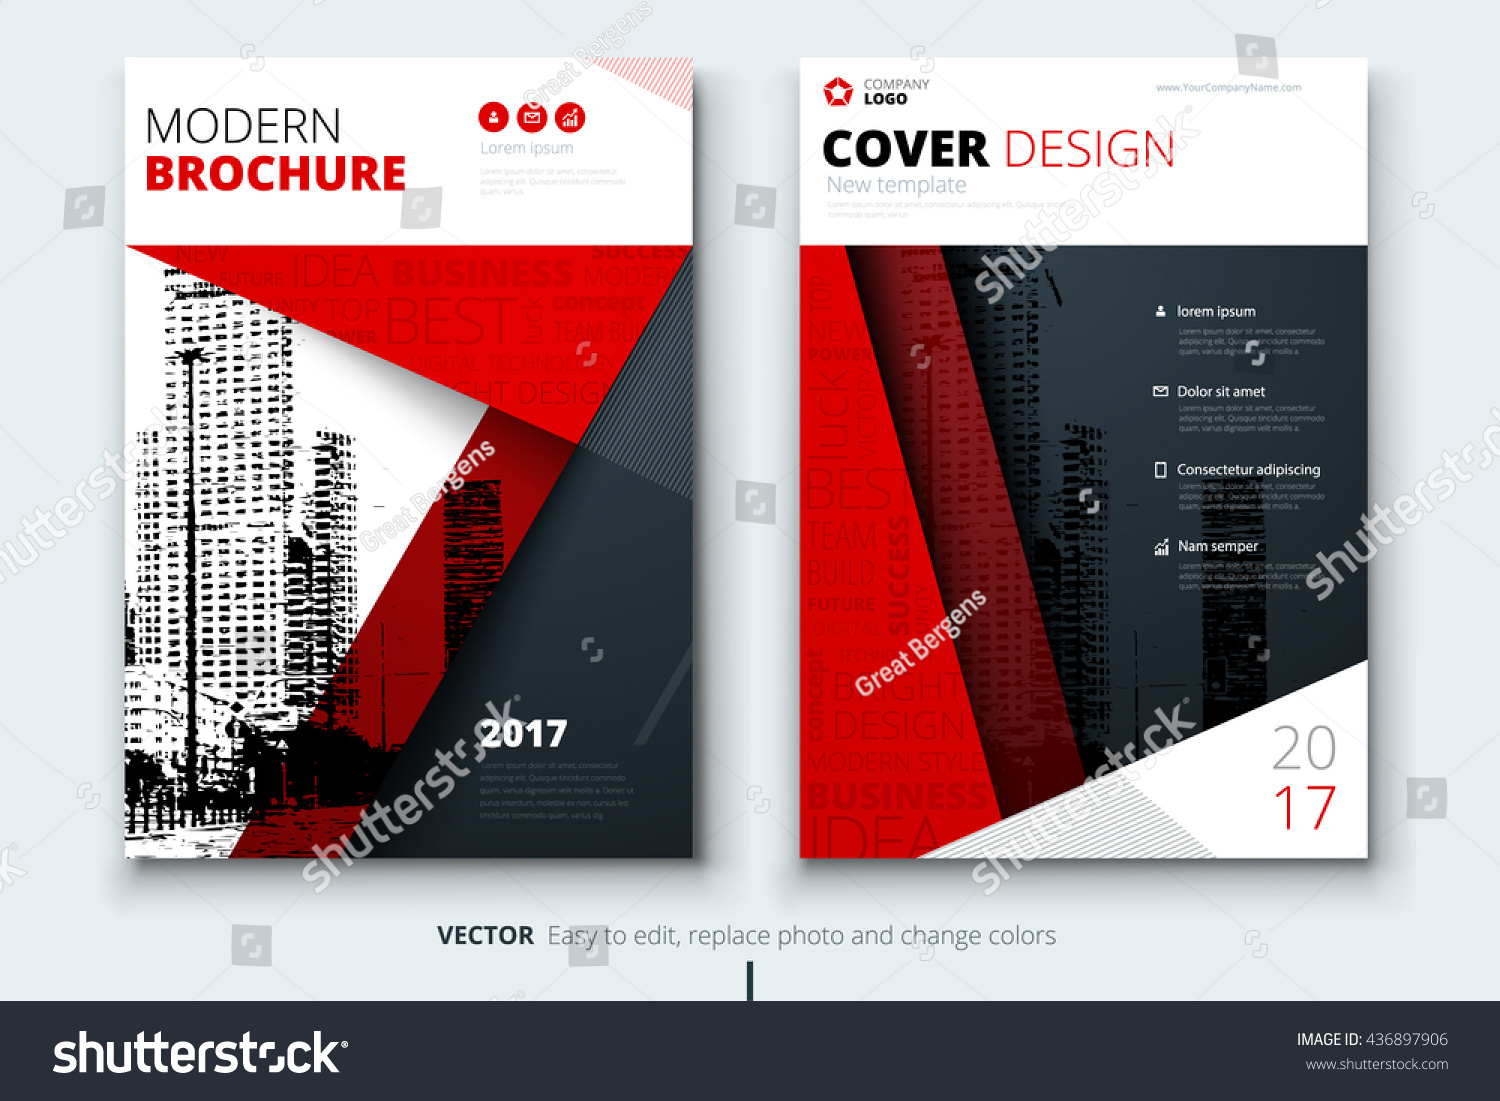 red cover design brochure creative poster stock vector 436897906 red cover design for brochure creative poster booklet leaflet or flyer concept